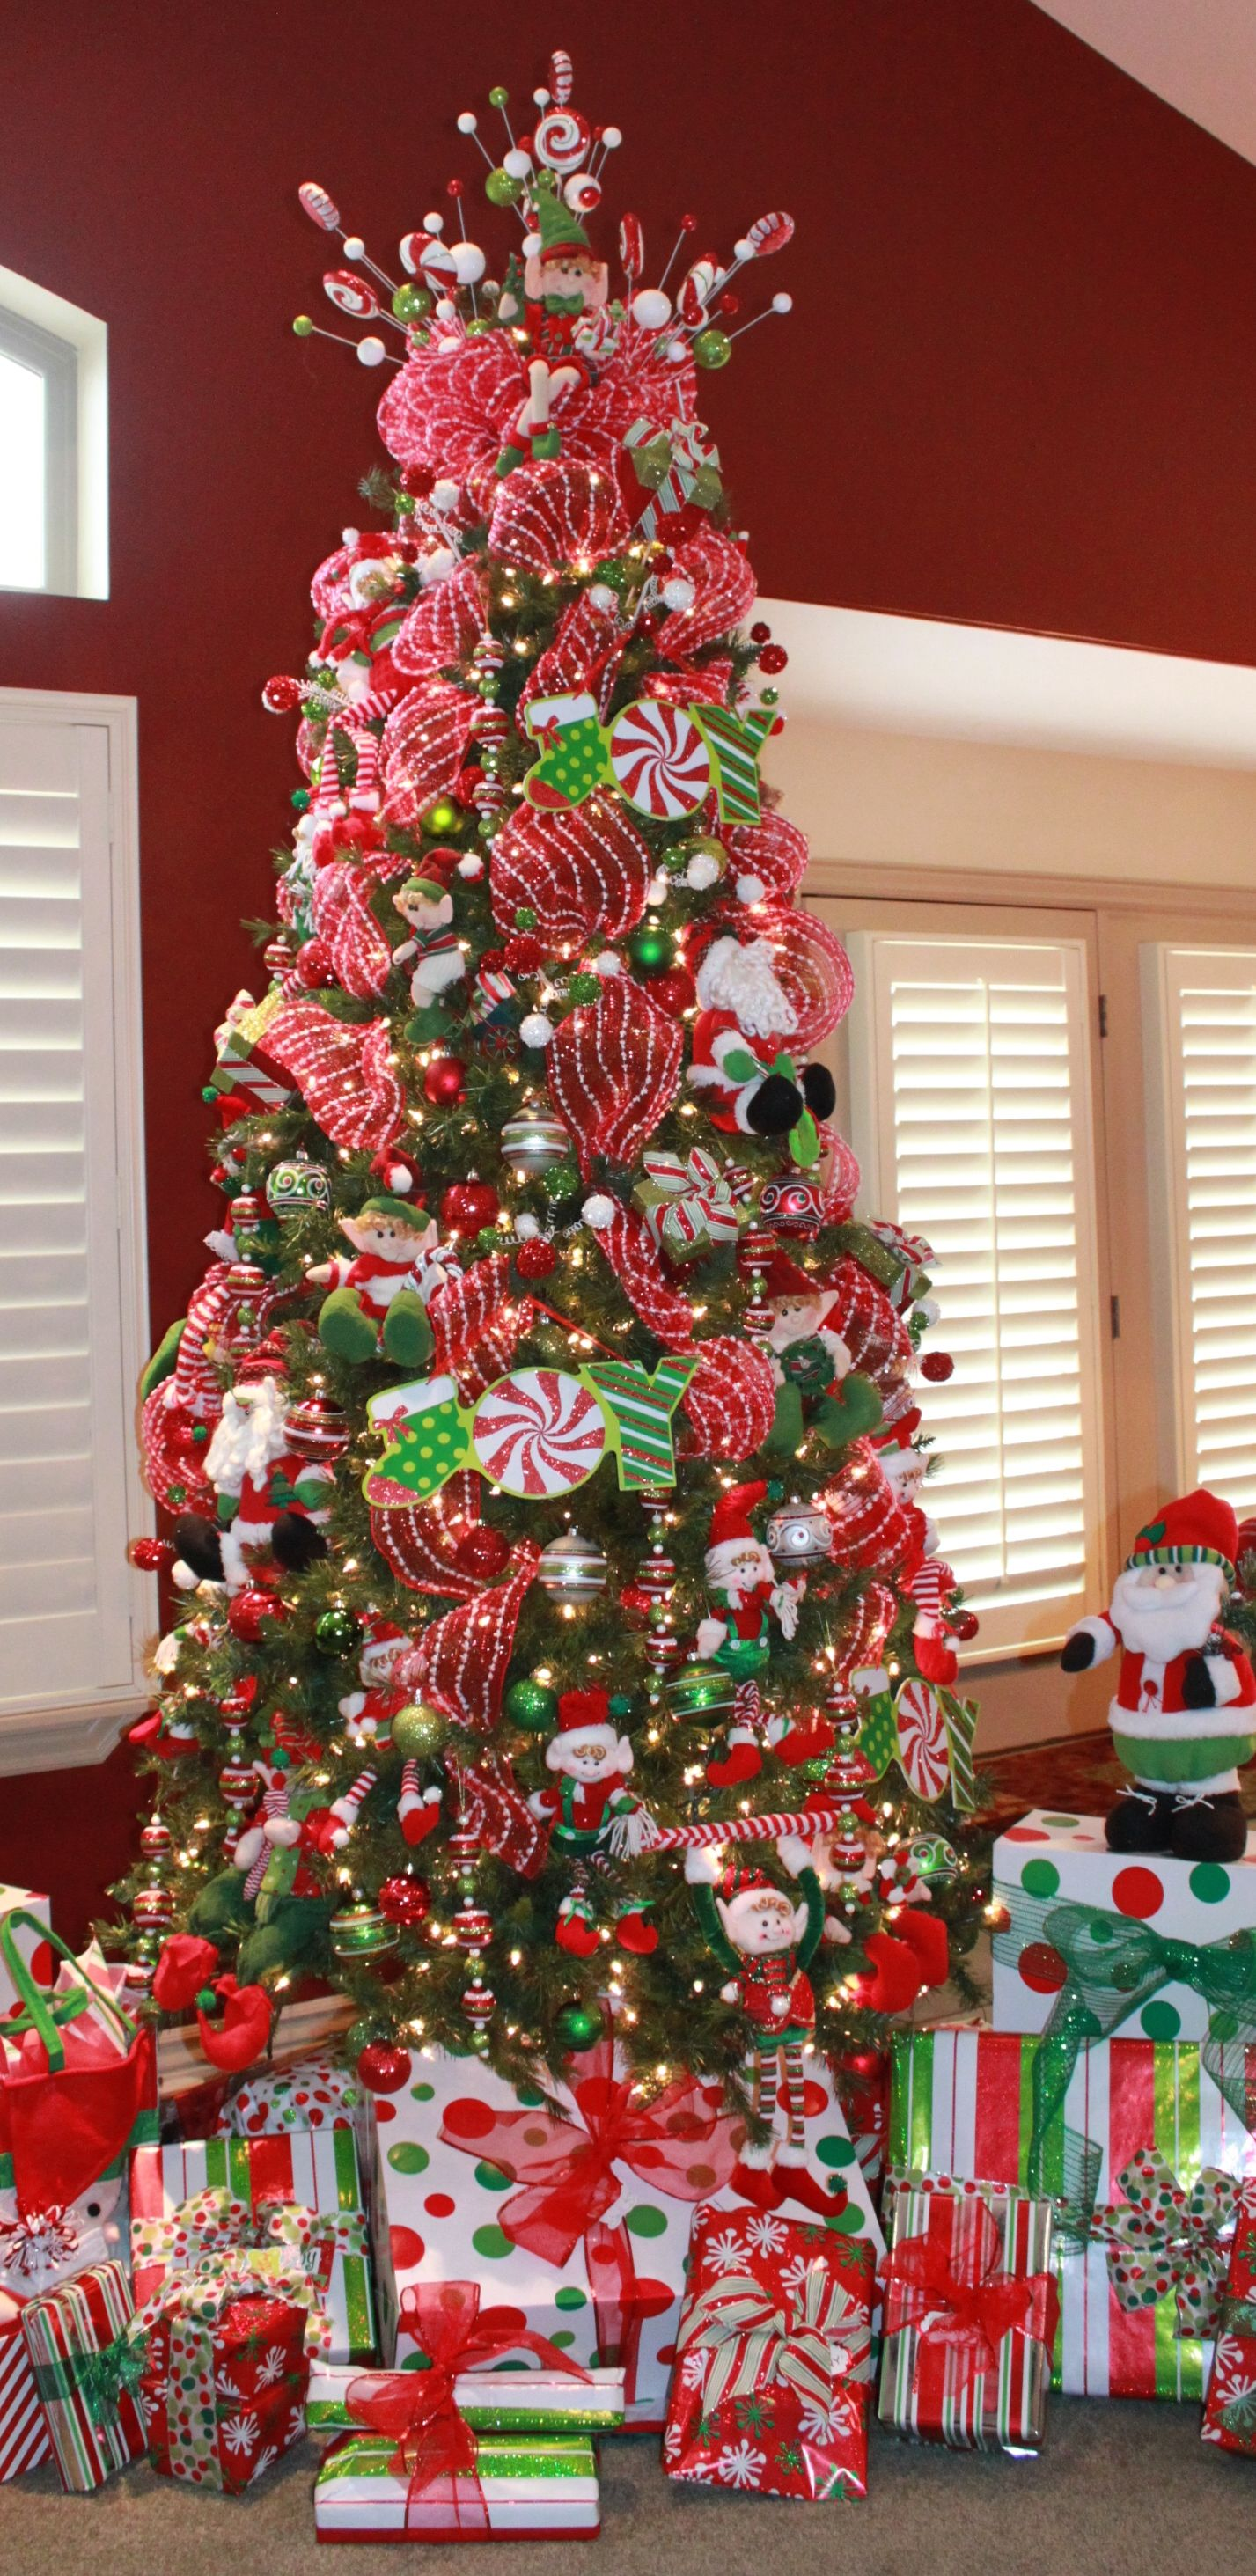 Traditional Colors Elf Tree You Know Your Done Decorating When You No Longer Can See The Tree Christmas Tree Themes Diy Christmas Tree Garland Christmas Tree